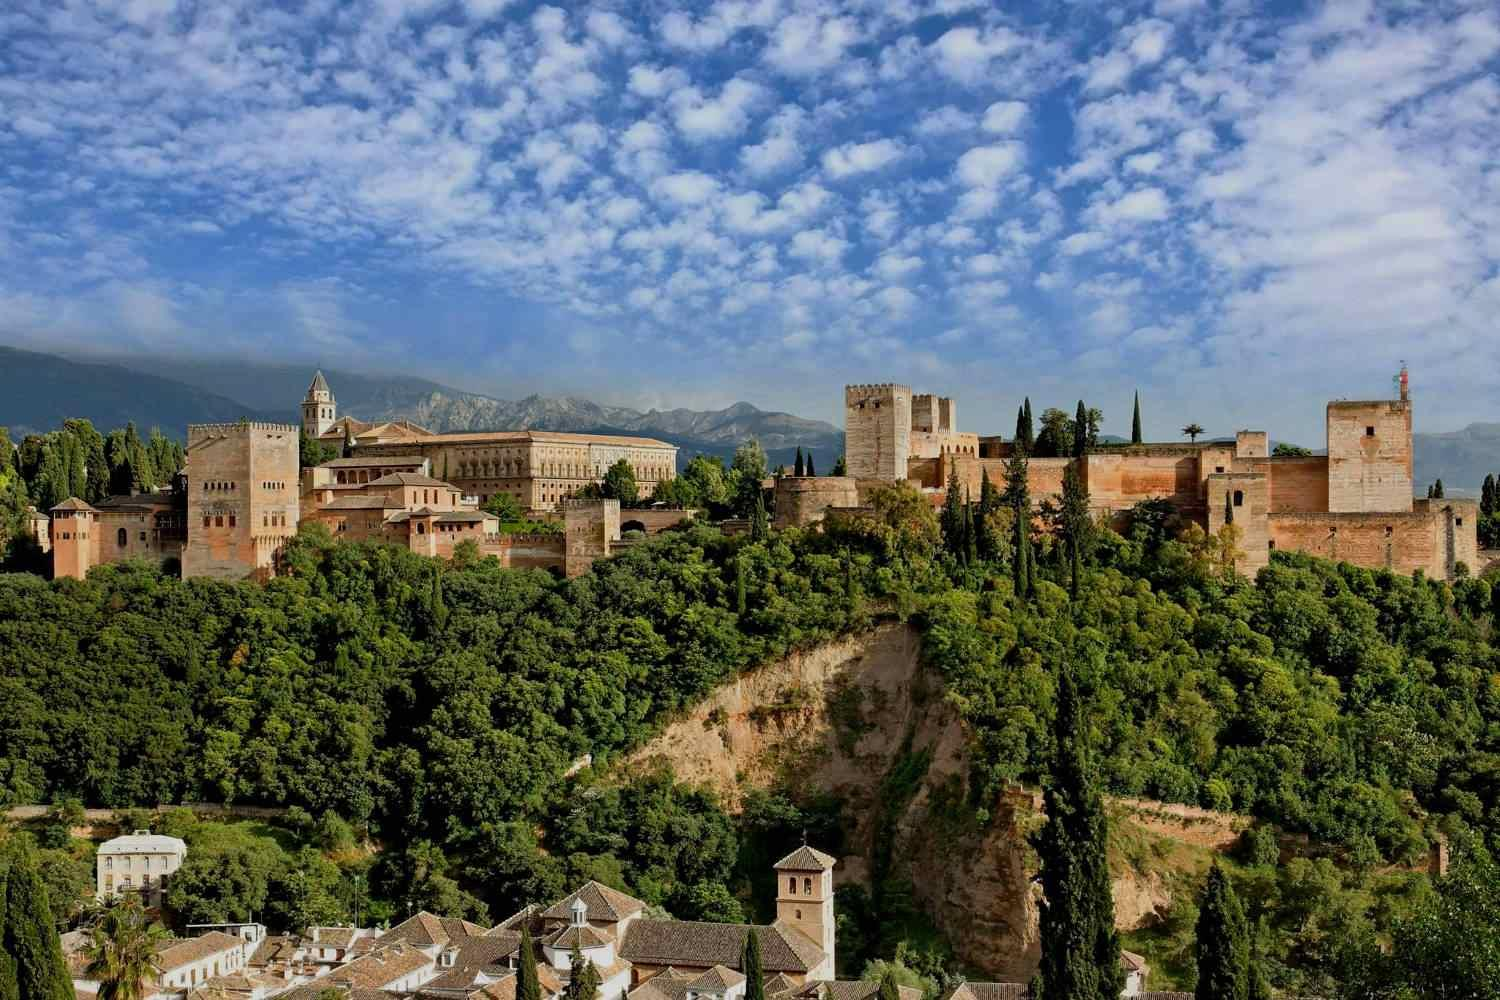 Best view of the Alhambra from San Nicolas viewpoint